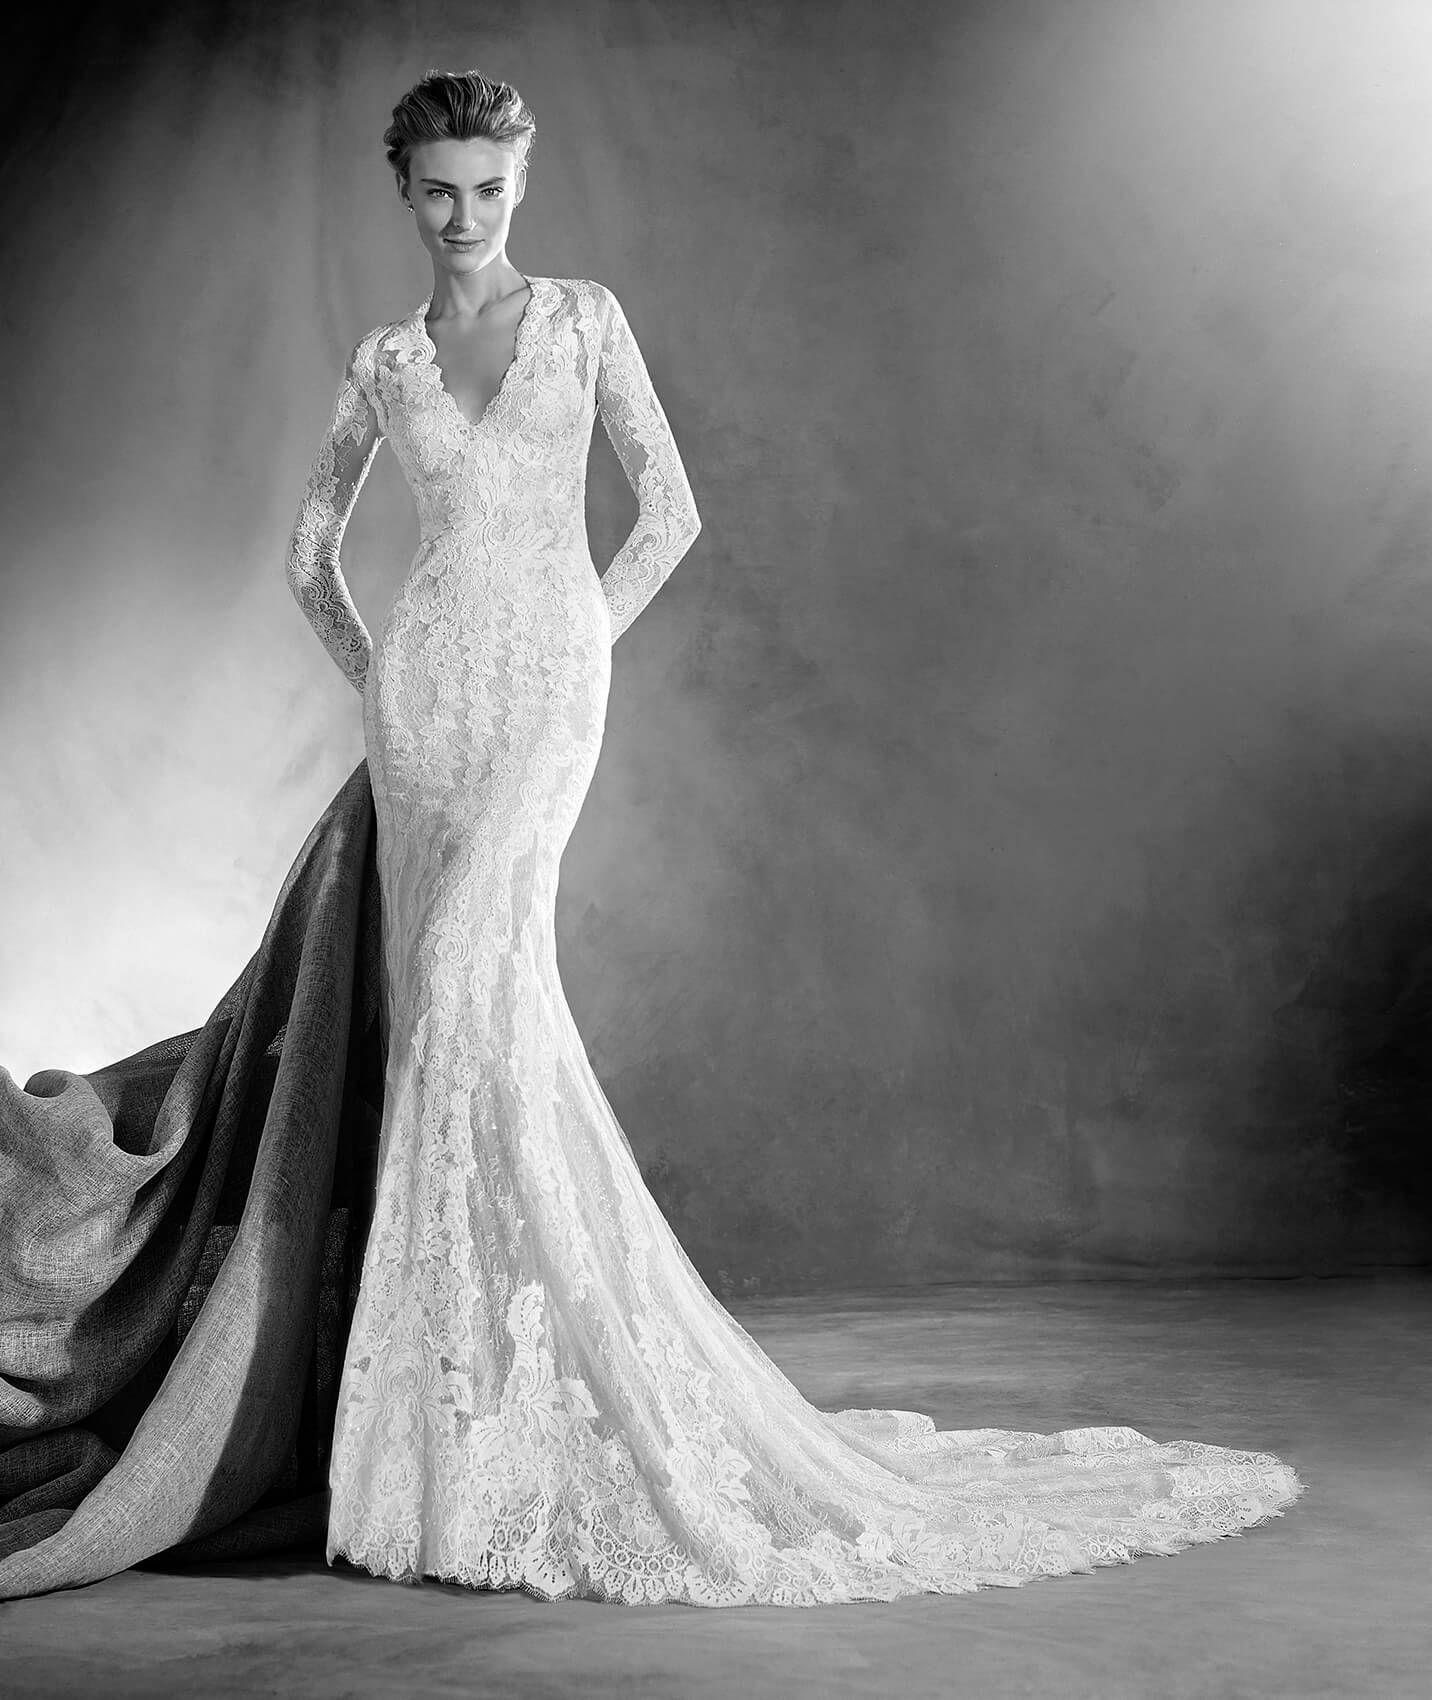 Best affordable wedding dress shops london  The  best images about gunce secme on Pinterest  Wedding dressses